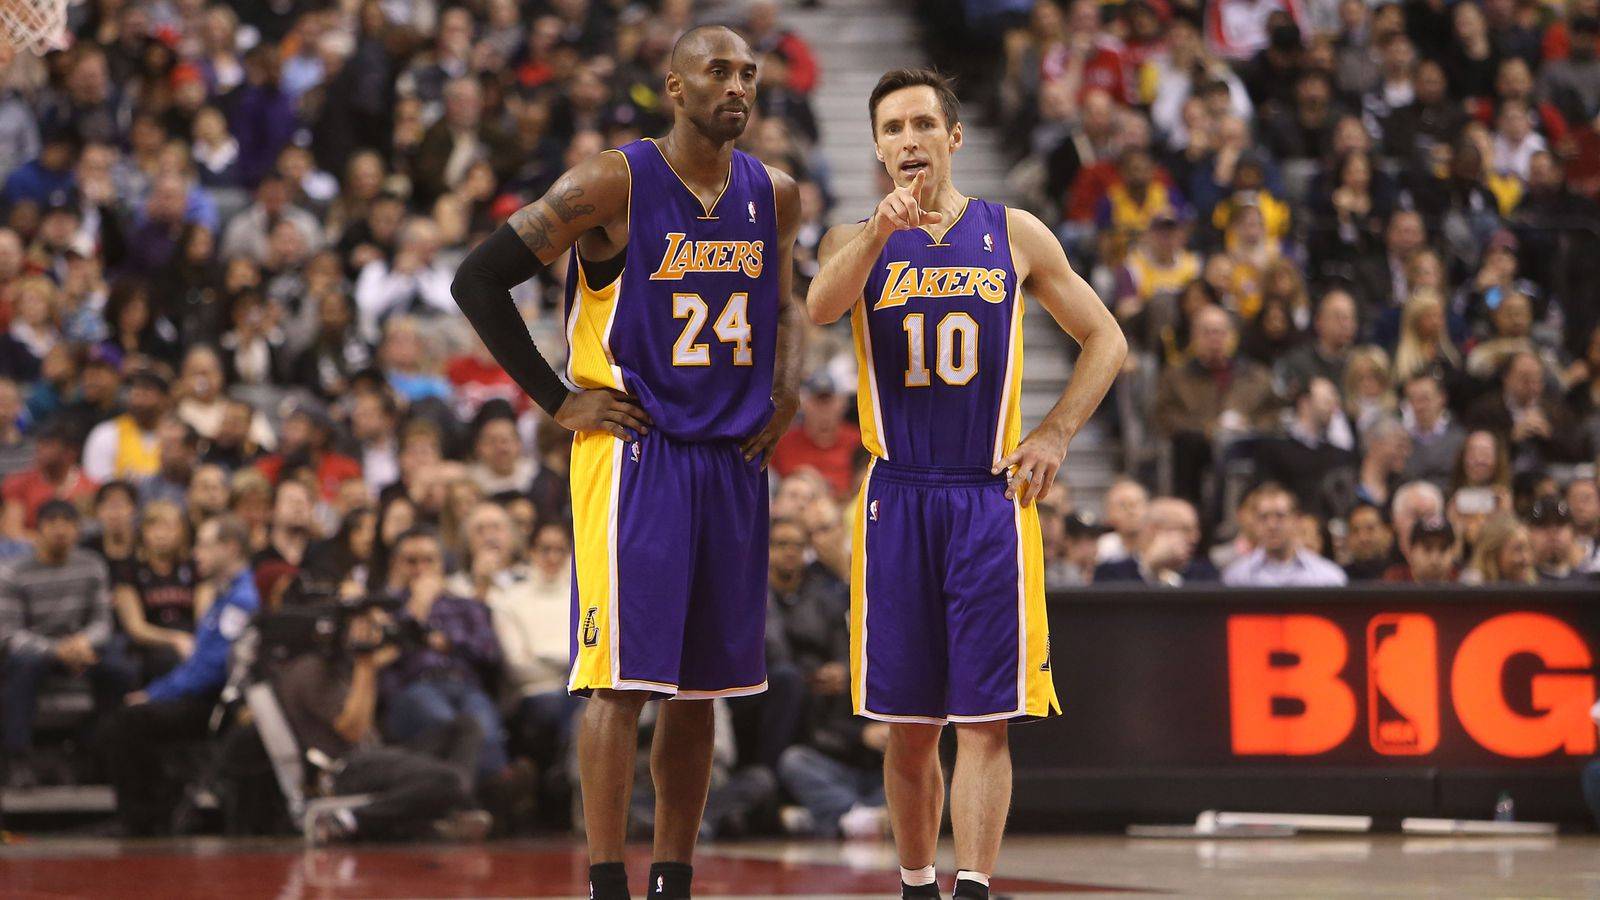 Raptors Vs Lakers Pinterest: Lakers Vs Raptors GameDay Thread: Raps Visit Kobe And Co